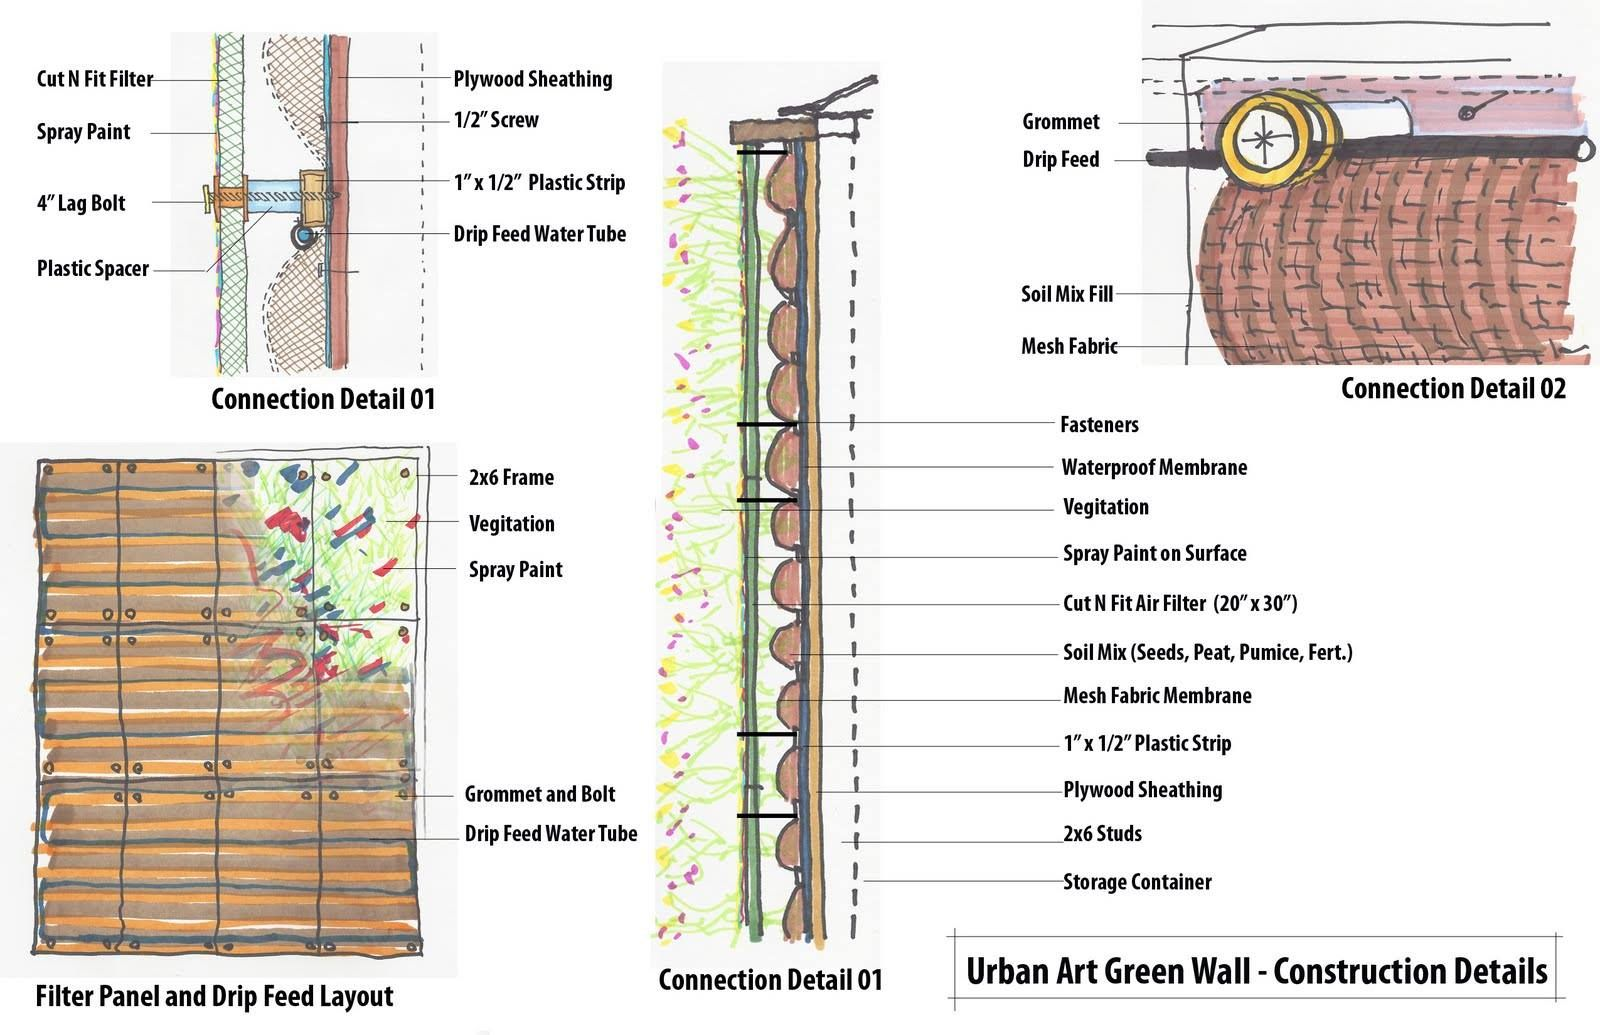 Building systems mid term thermal comfort green roofs urban art wall